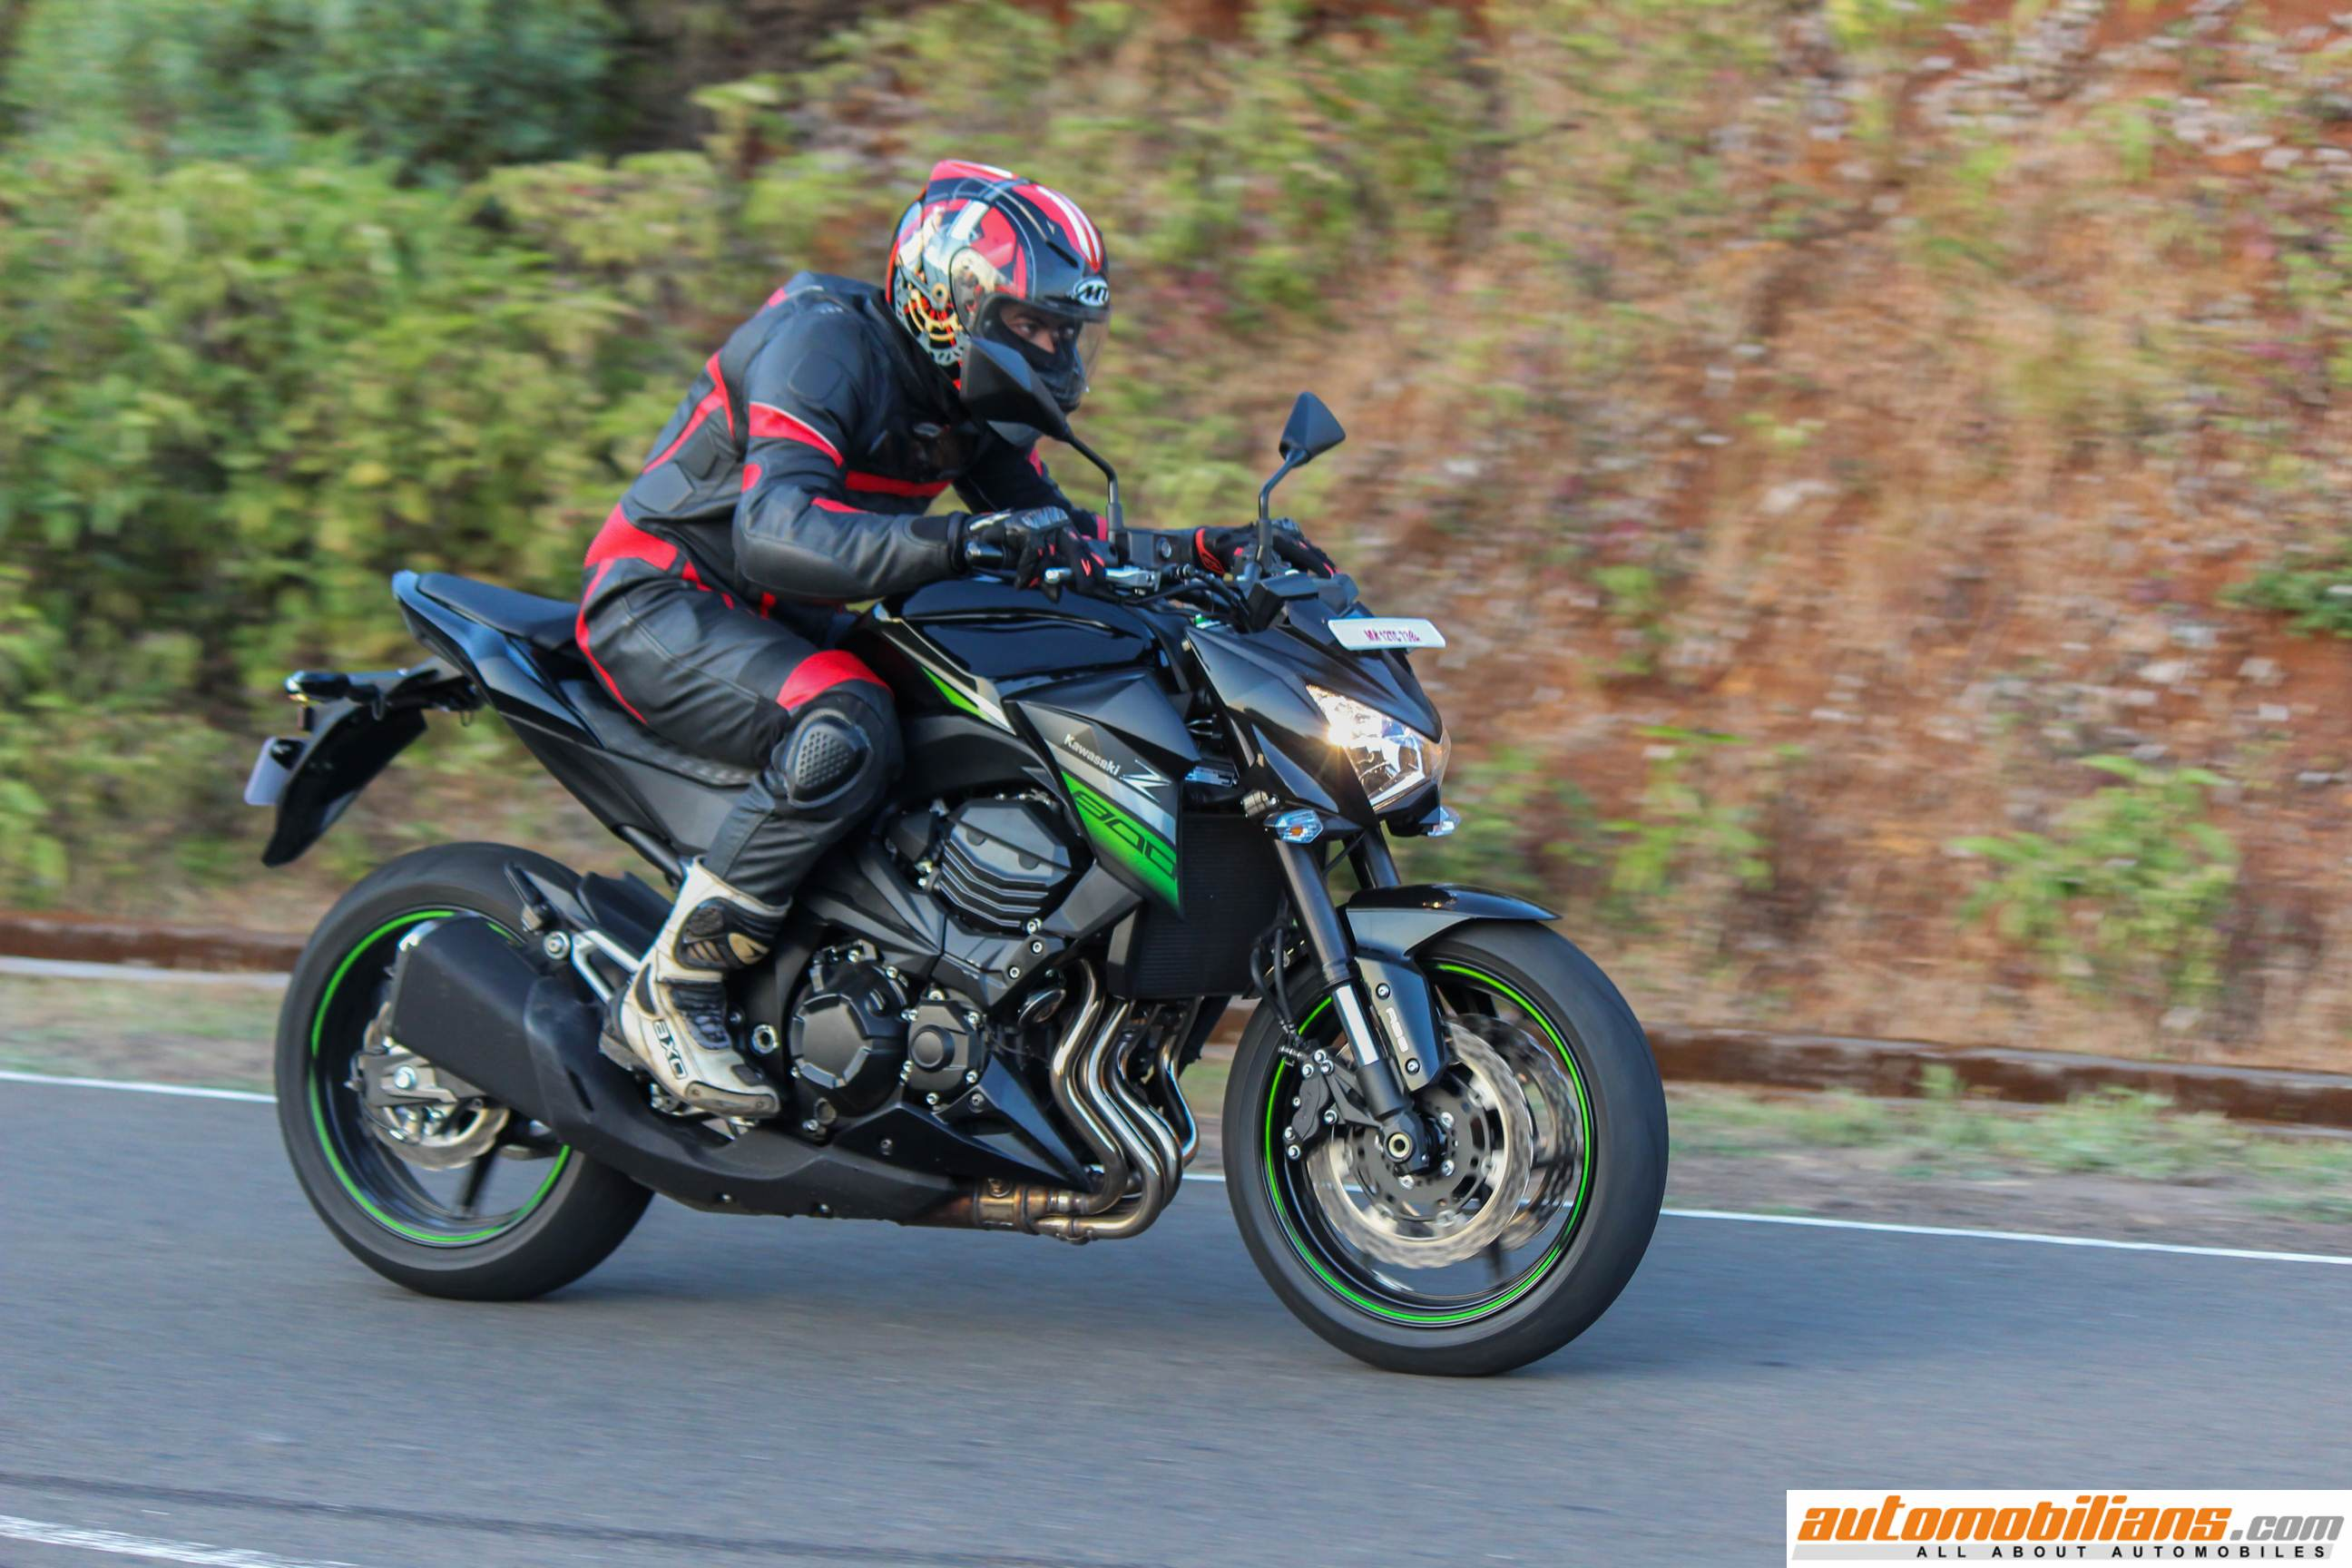 automobilians - 2016 kawasaki z800 abs - test ride review